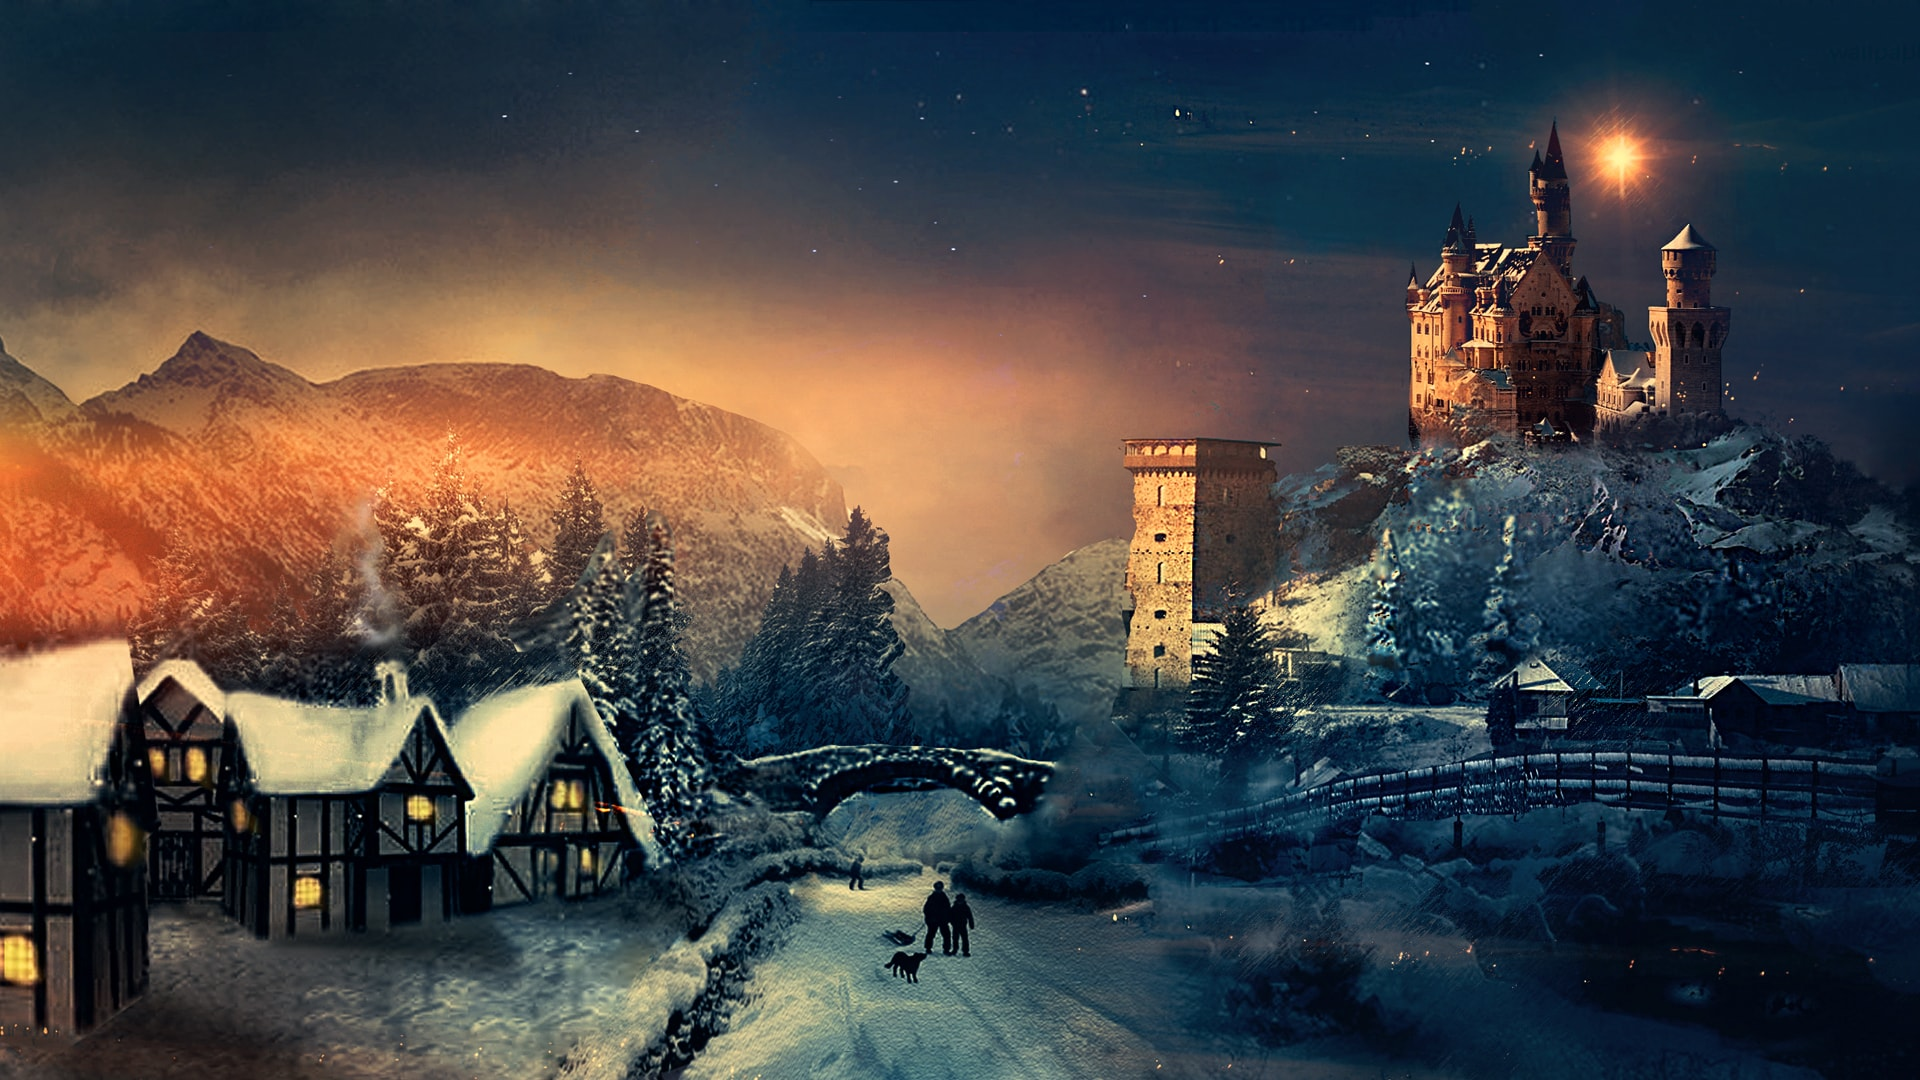 Hd Christmas Wallpaper.Get The Latest Hd Christmas Wallpapers For Free